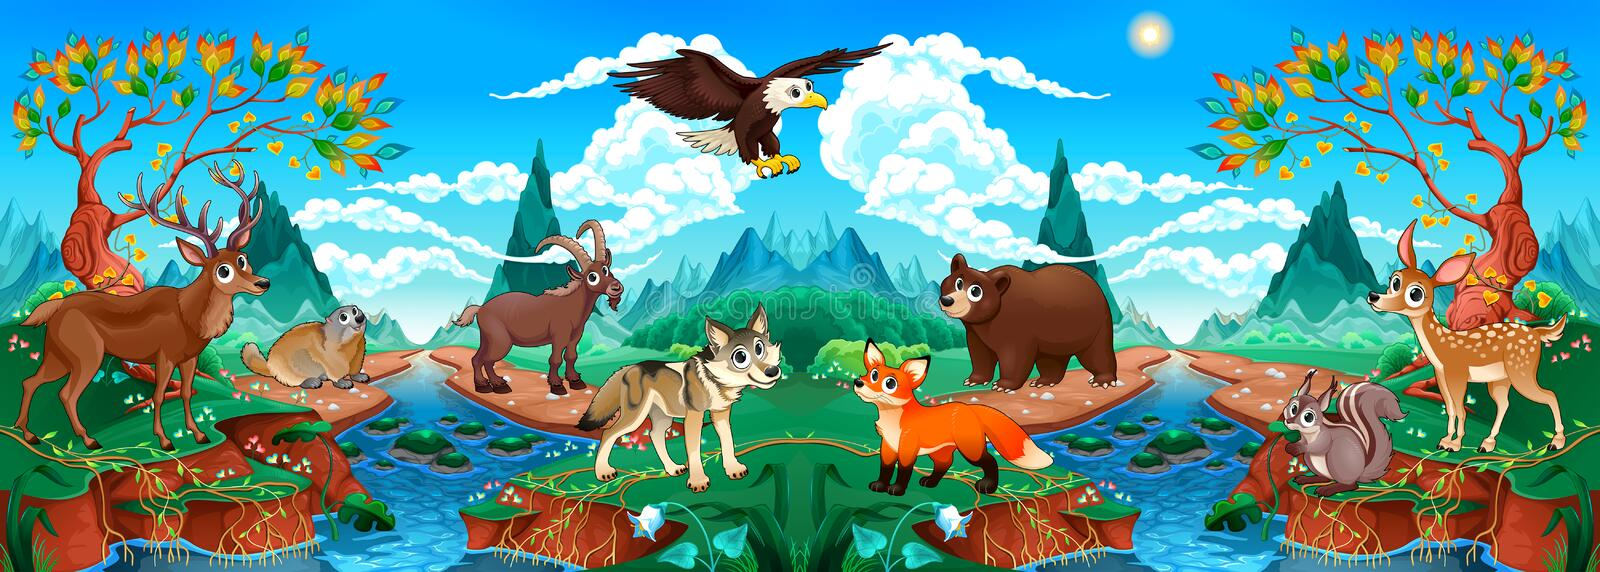 Funny wood animals in a mountain landscape with river stock illustration